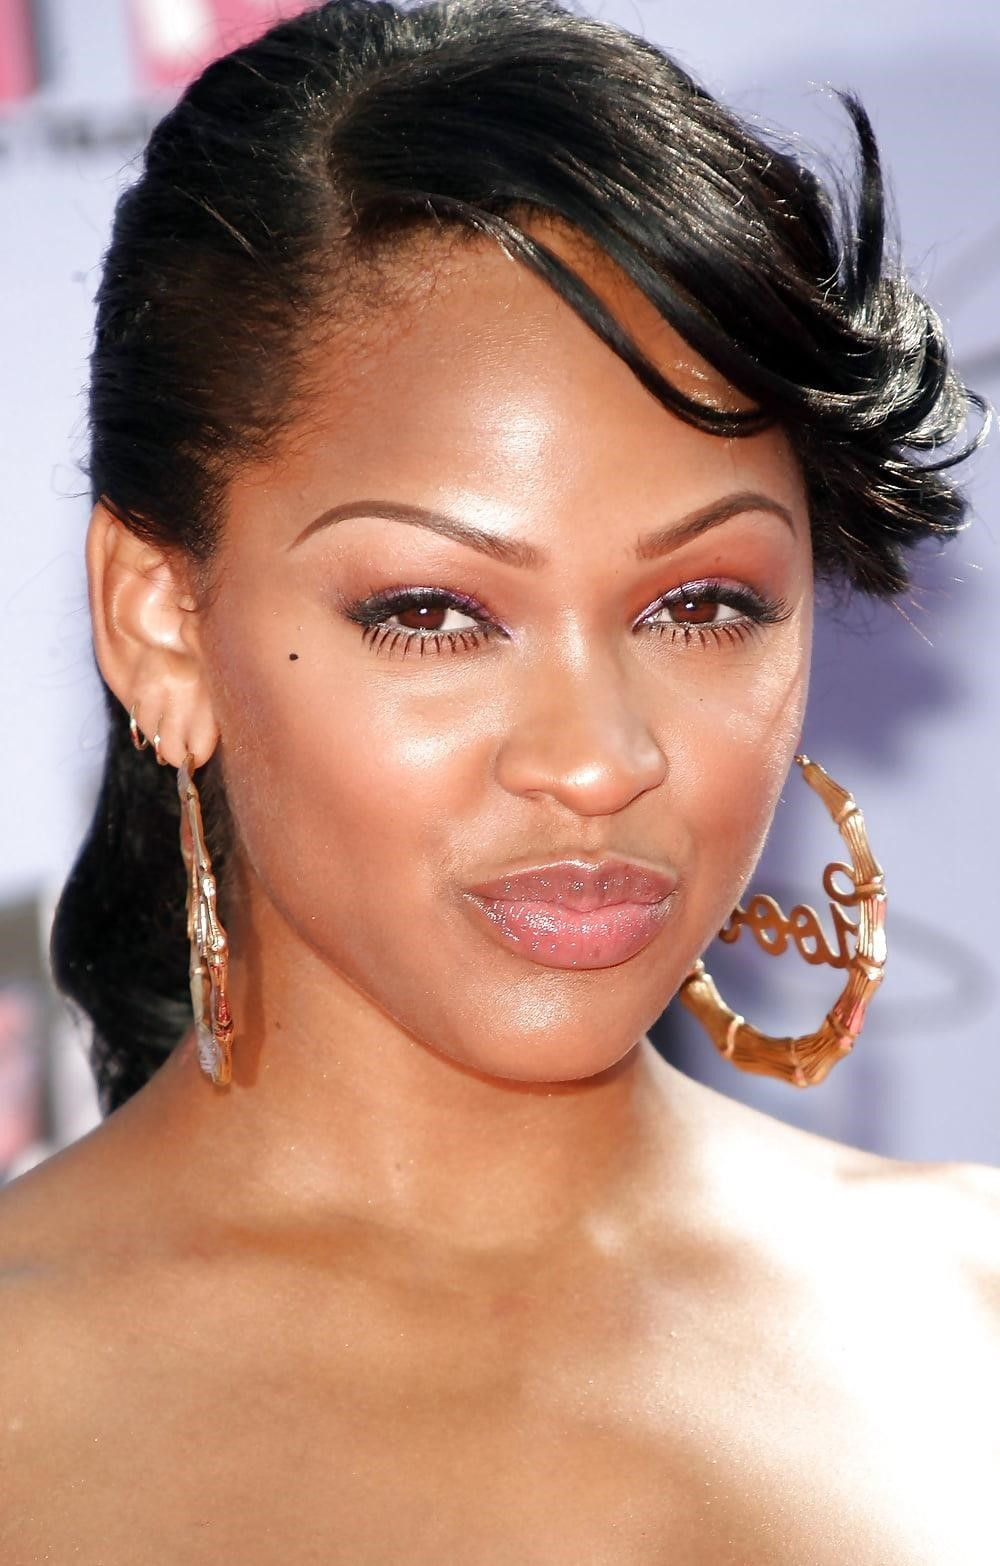 Meagan good nude pictures-7939